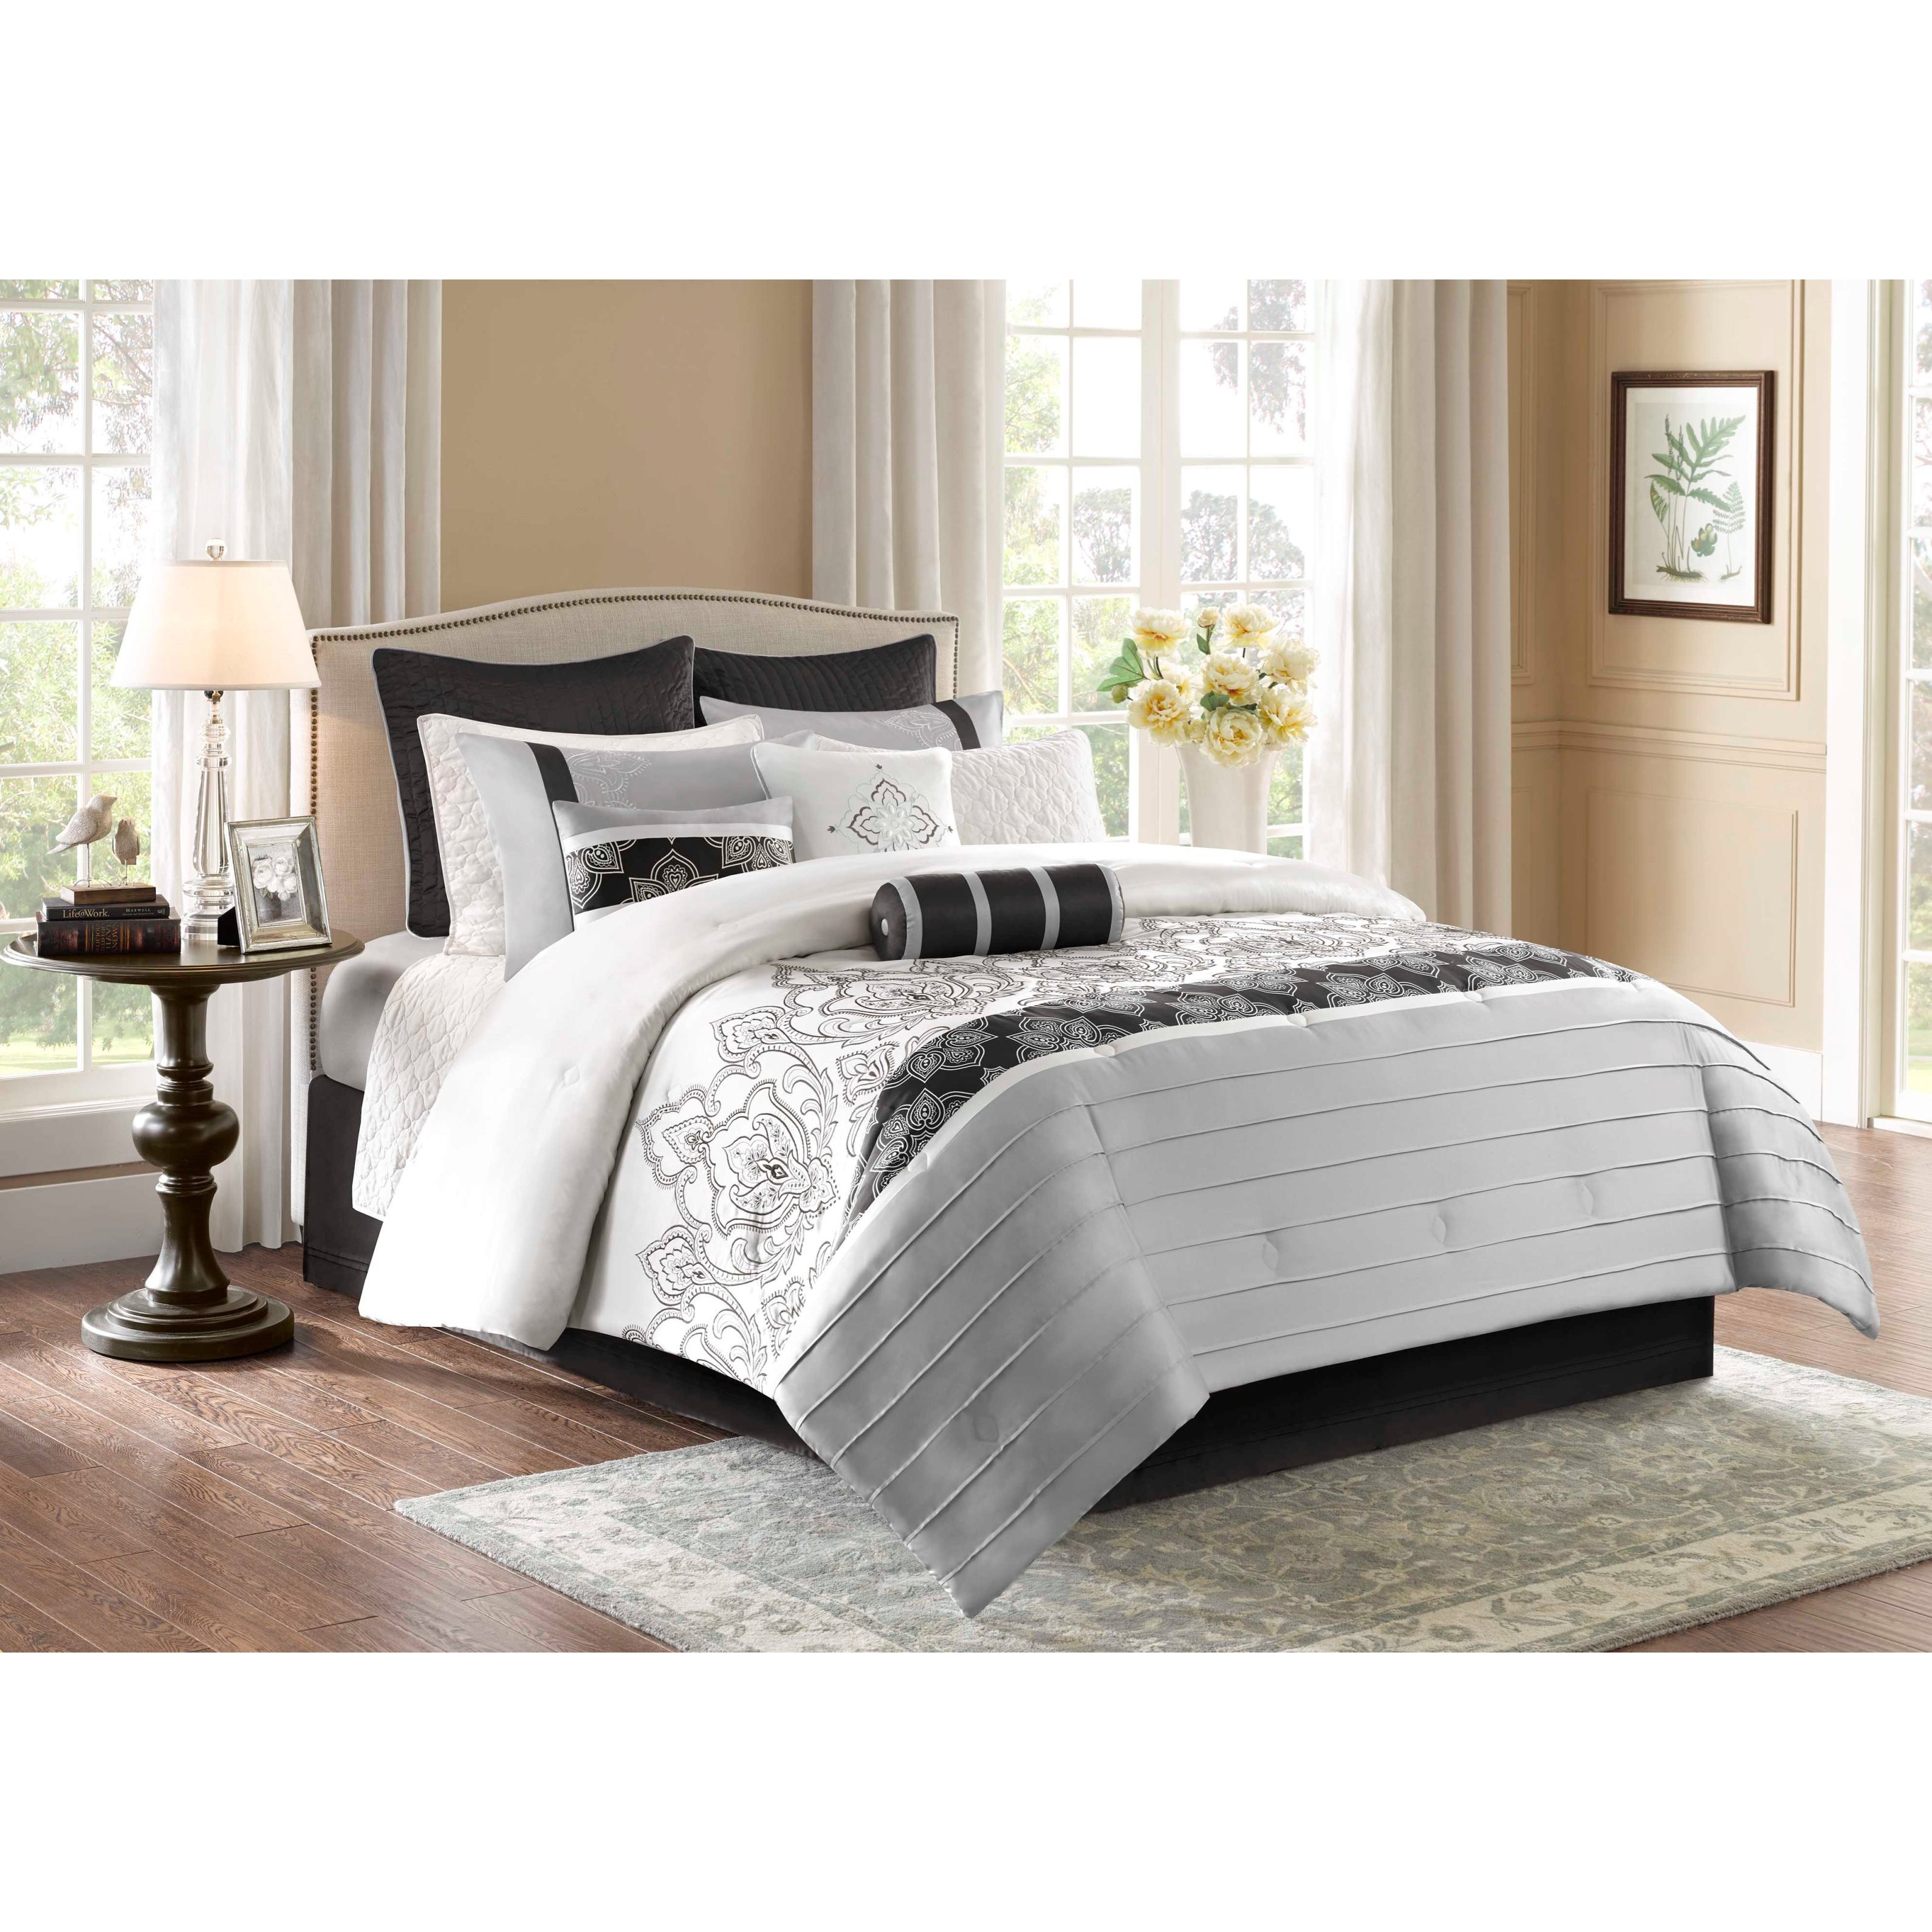 Luxurious  9 Piece Embroidered  Charmeuse Comforter Bedding Set Color Black New.